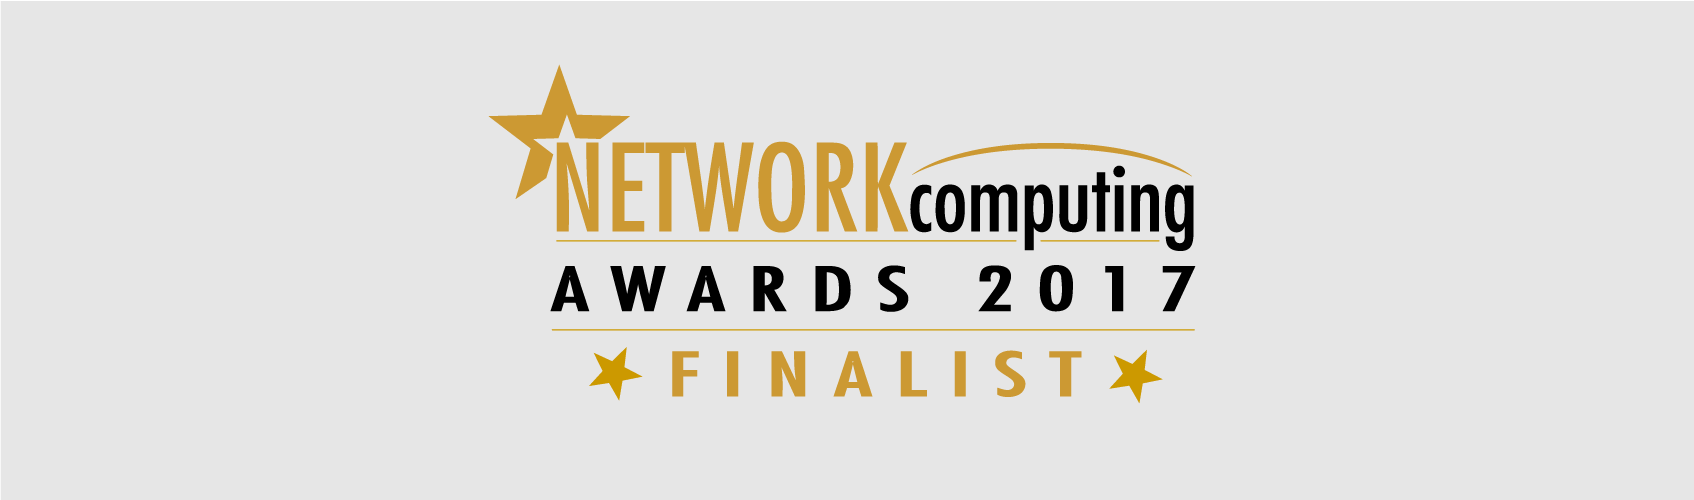 Network Computing Awards 2017